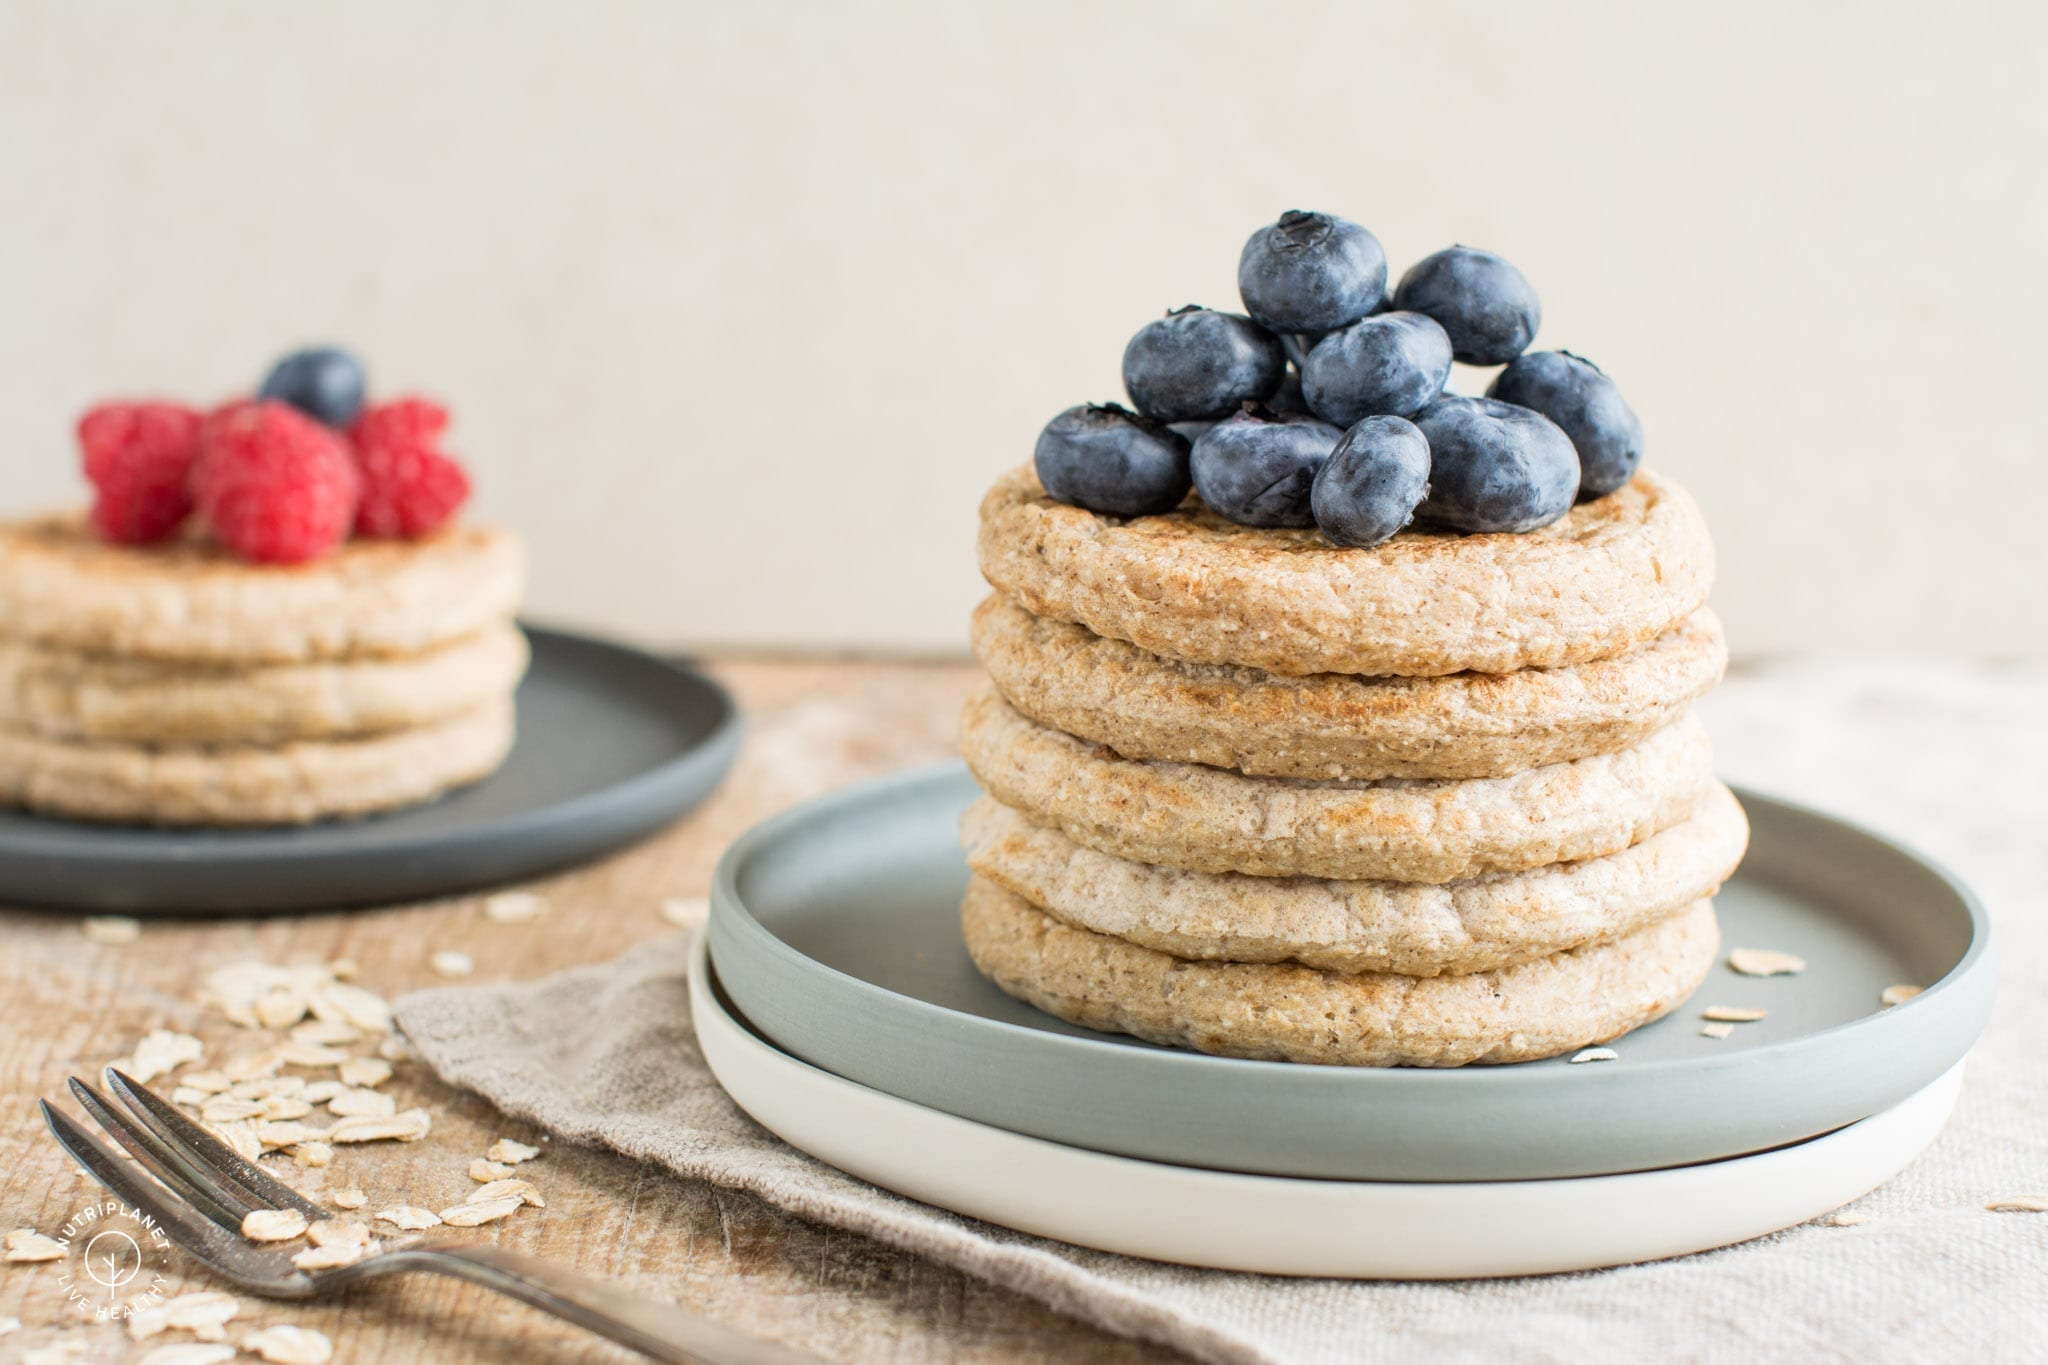 Light and fluffy vegan oatmeal pancakes with coconut flour